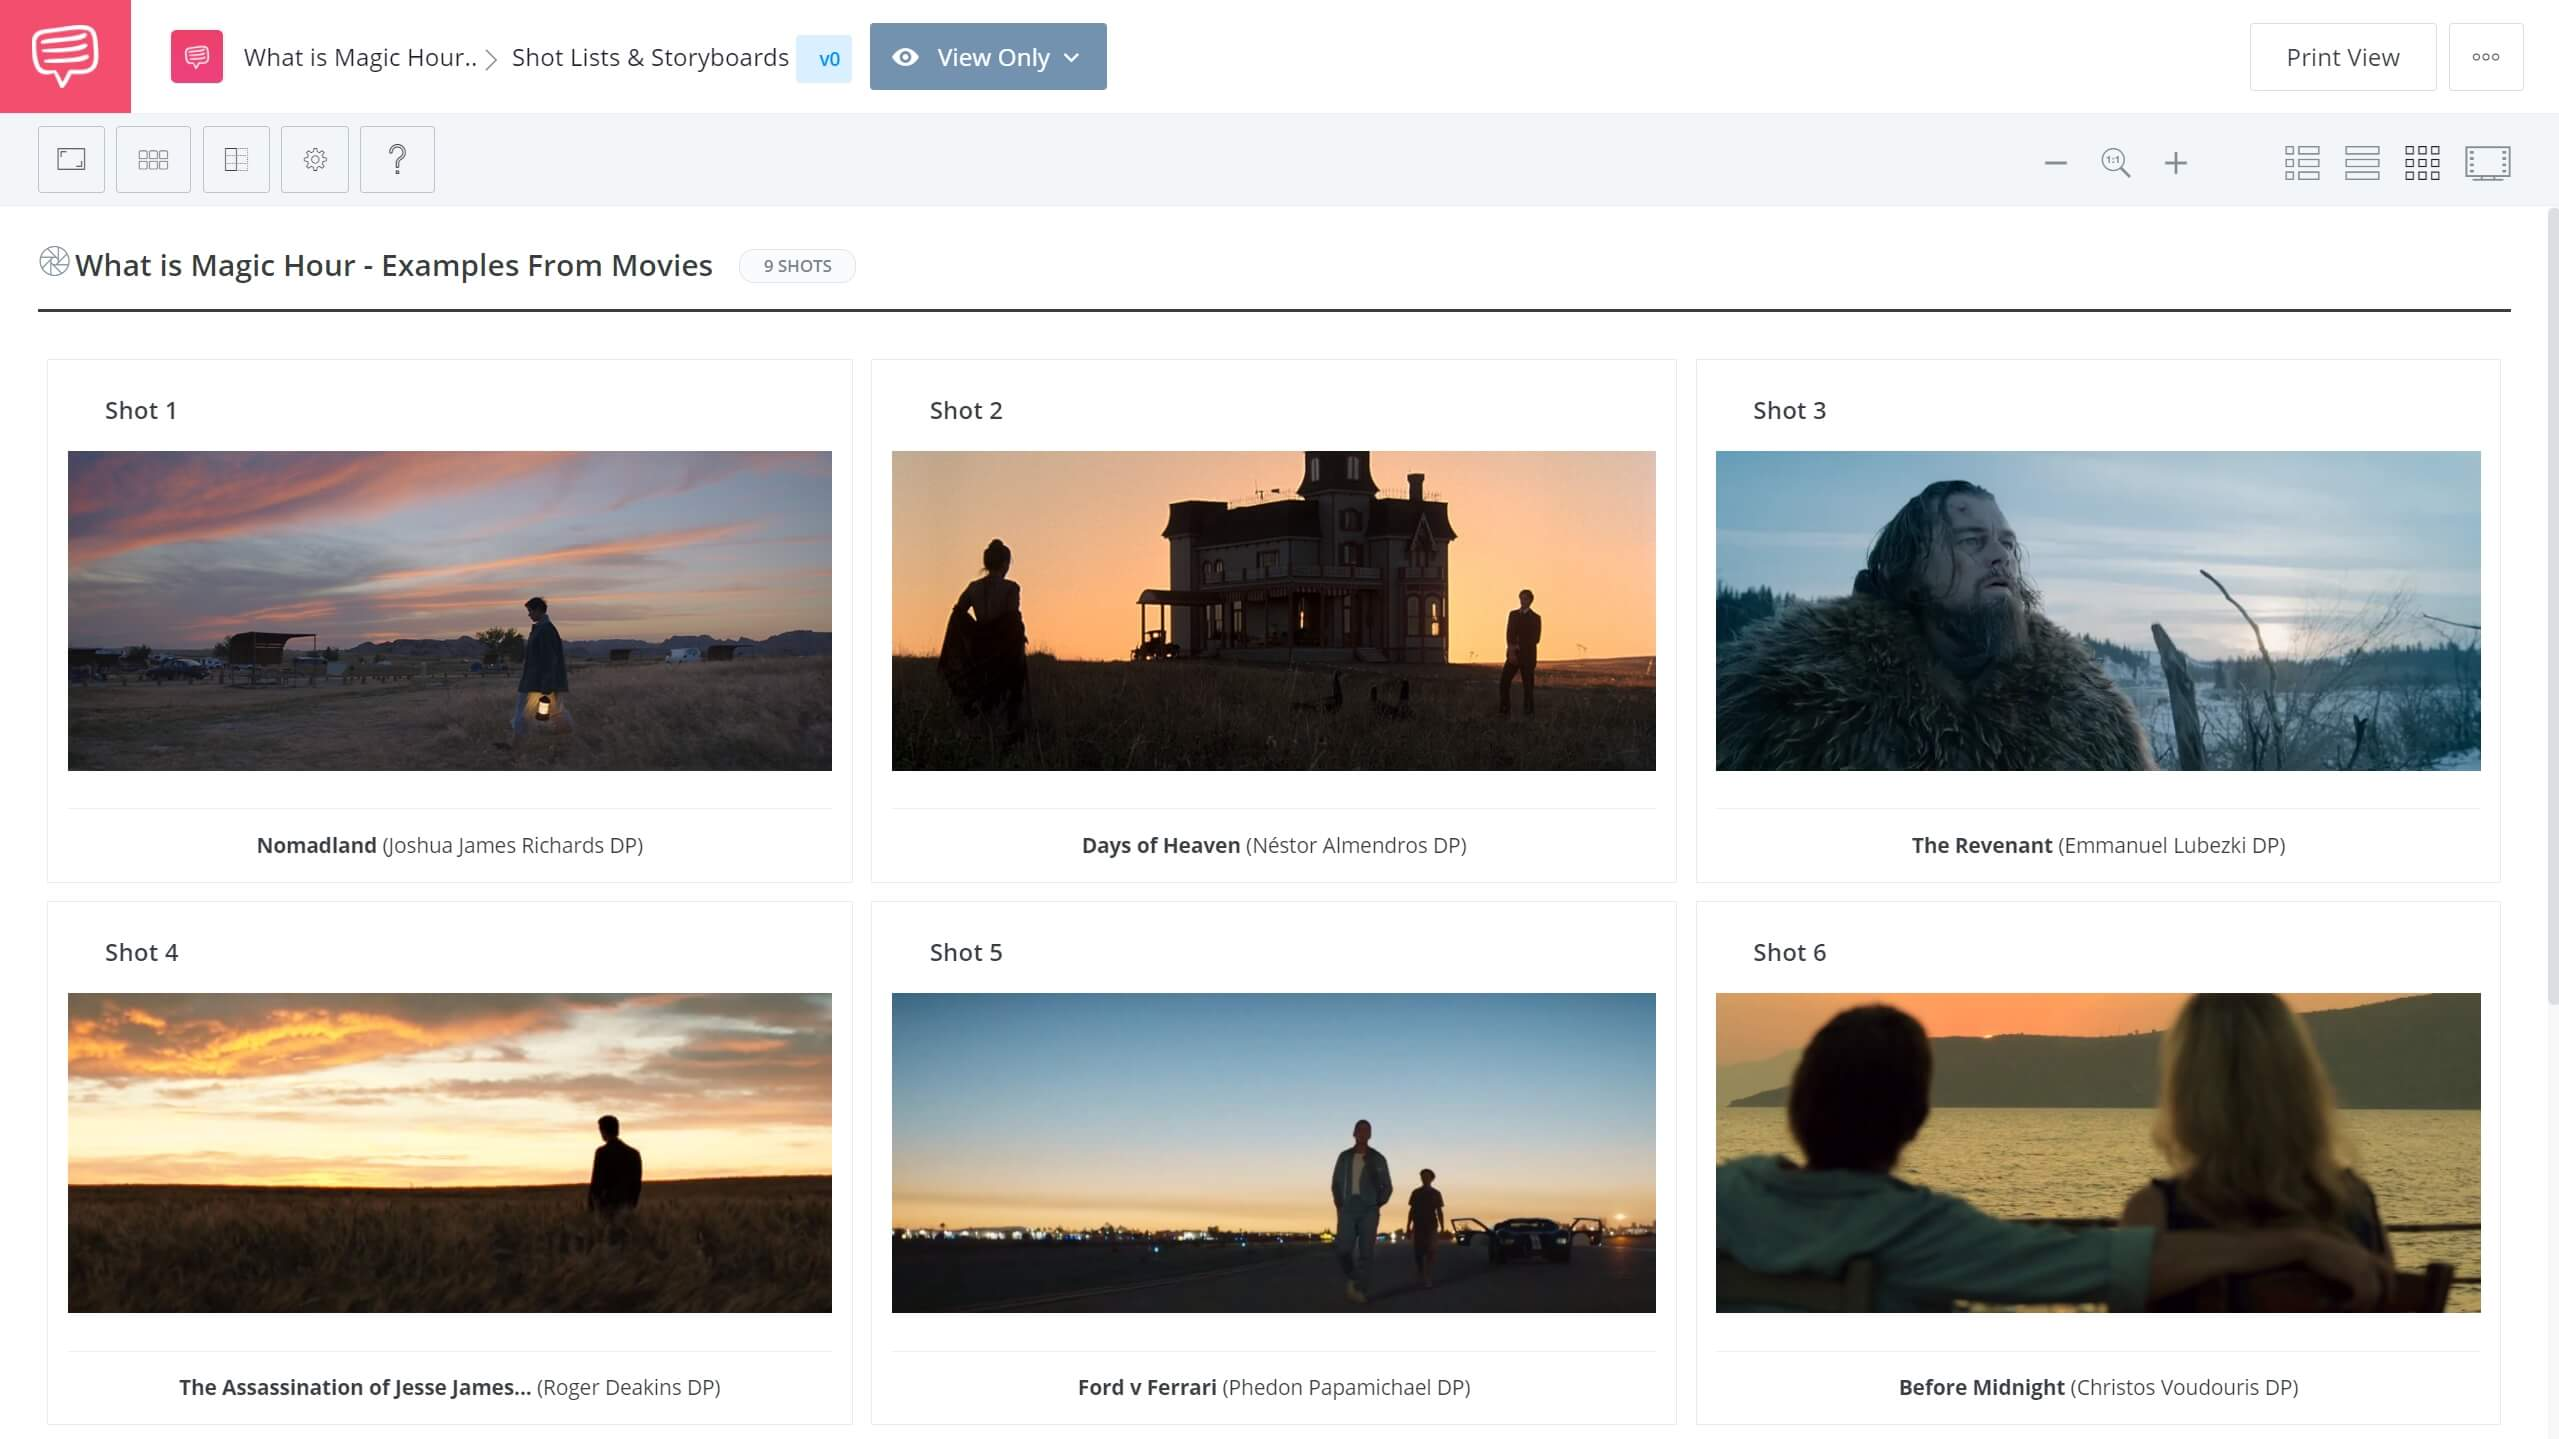 What is Magic Hour Magic Hour Movie Examples StudioBinder Shot Listing Software